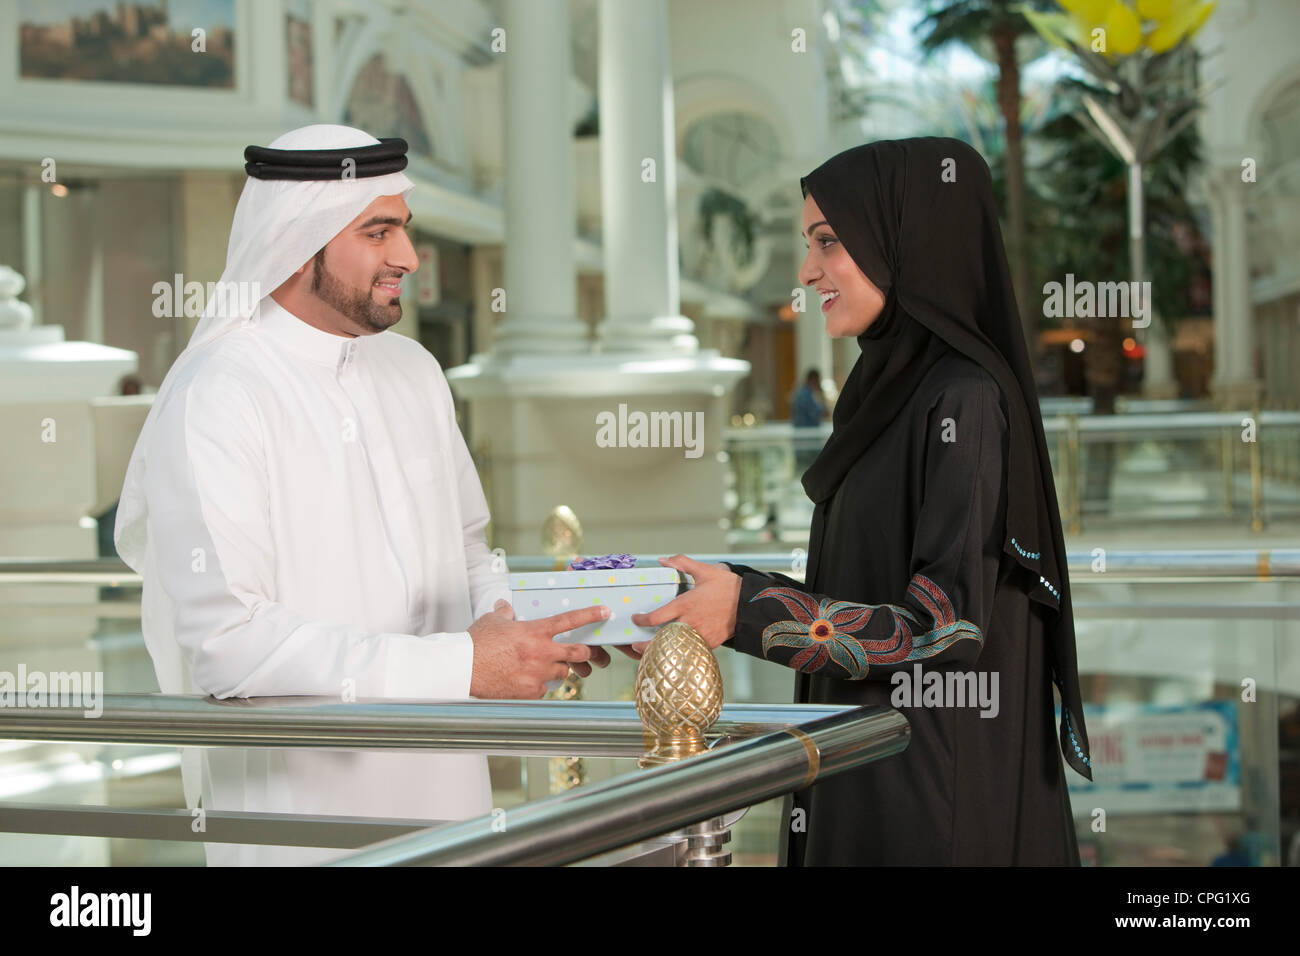 Arab man giving gift to woman. - Stock Image